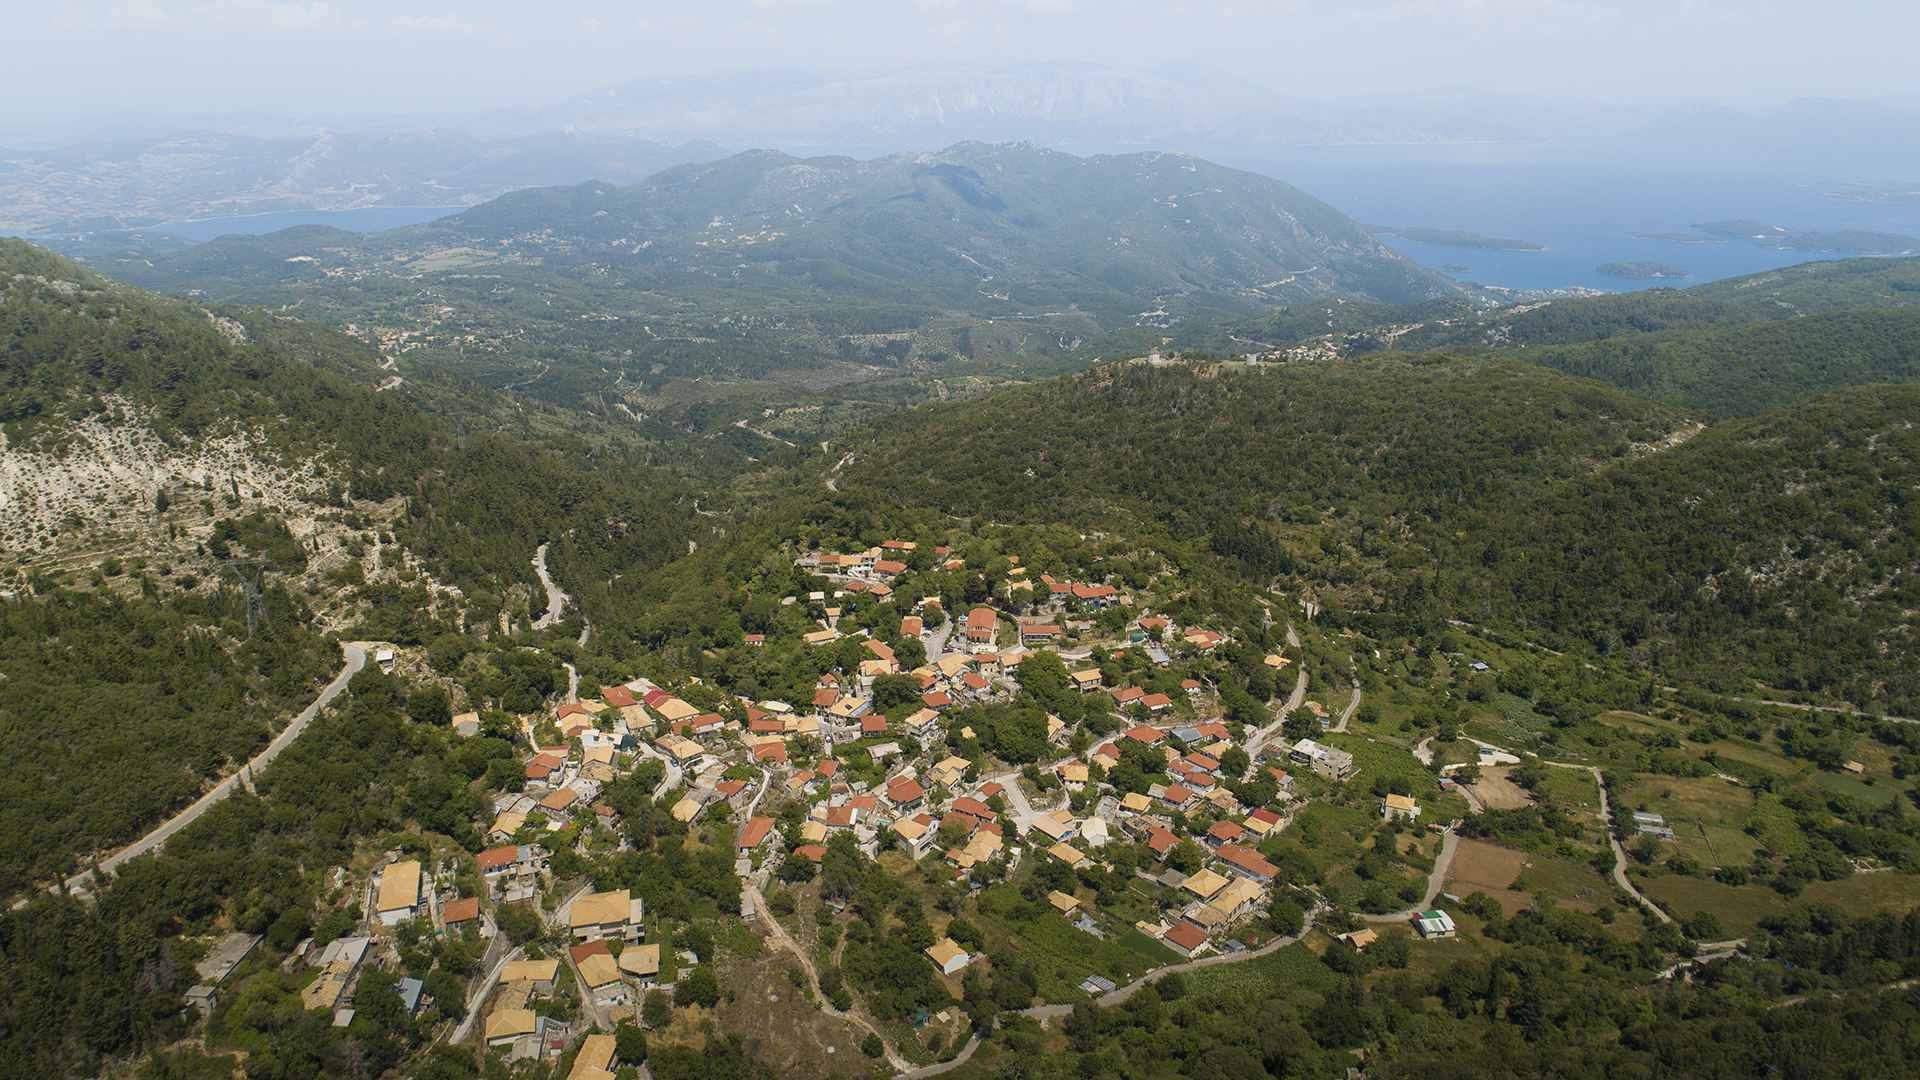 Village-hopping in Lefkada